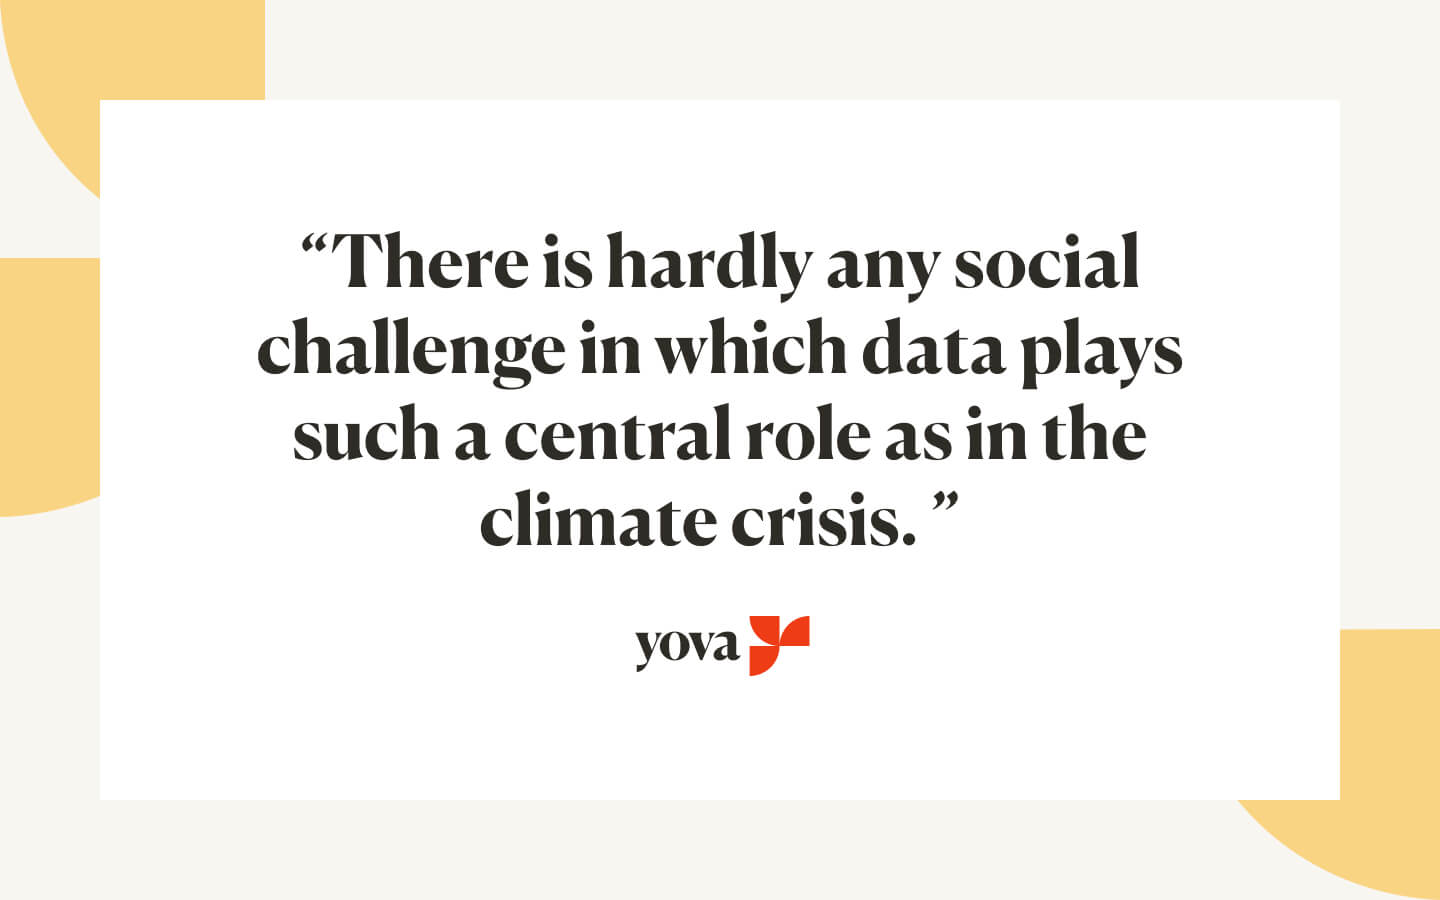 Role of data in the climate crisis